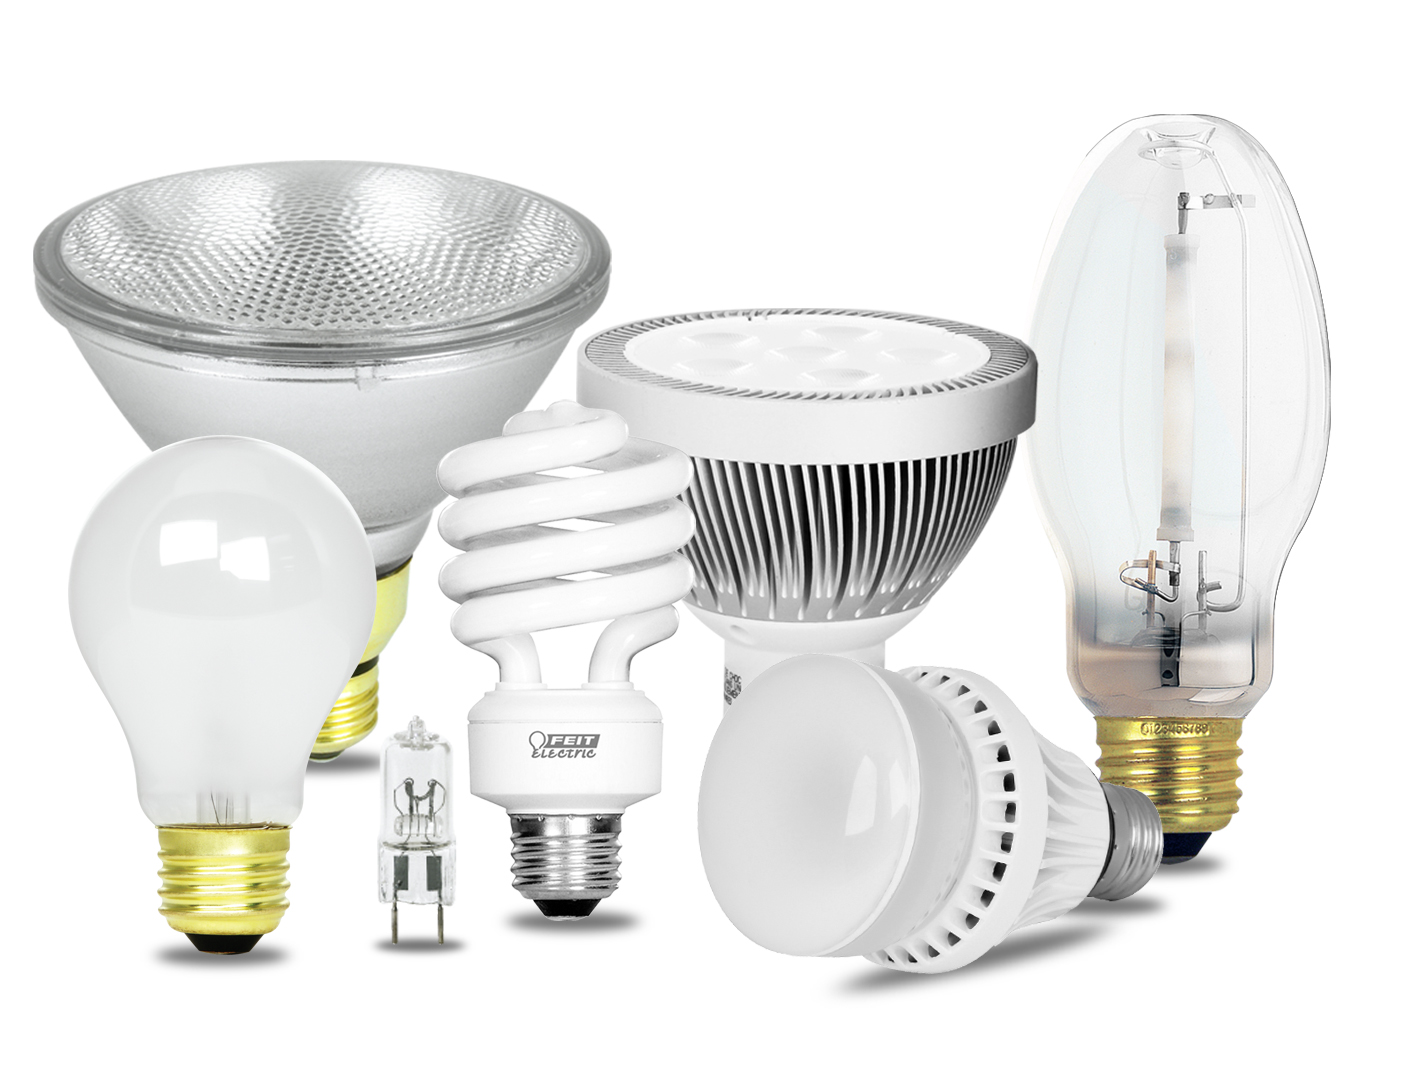 different types of light bulbs aries inspection company. Black Bedroom Furniture Sets. Home Design Ideas